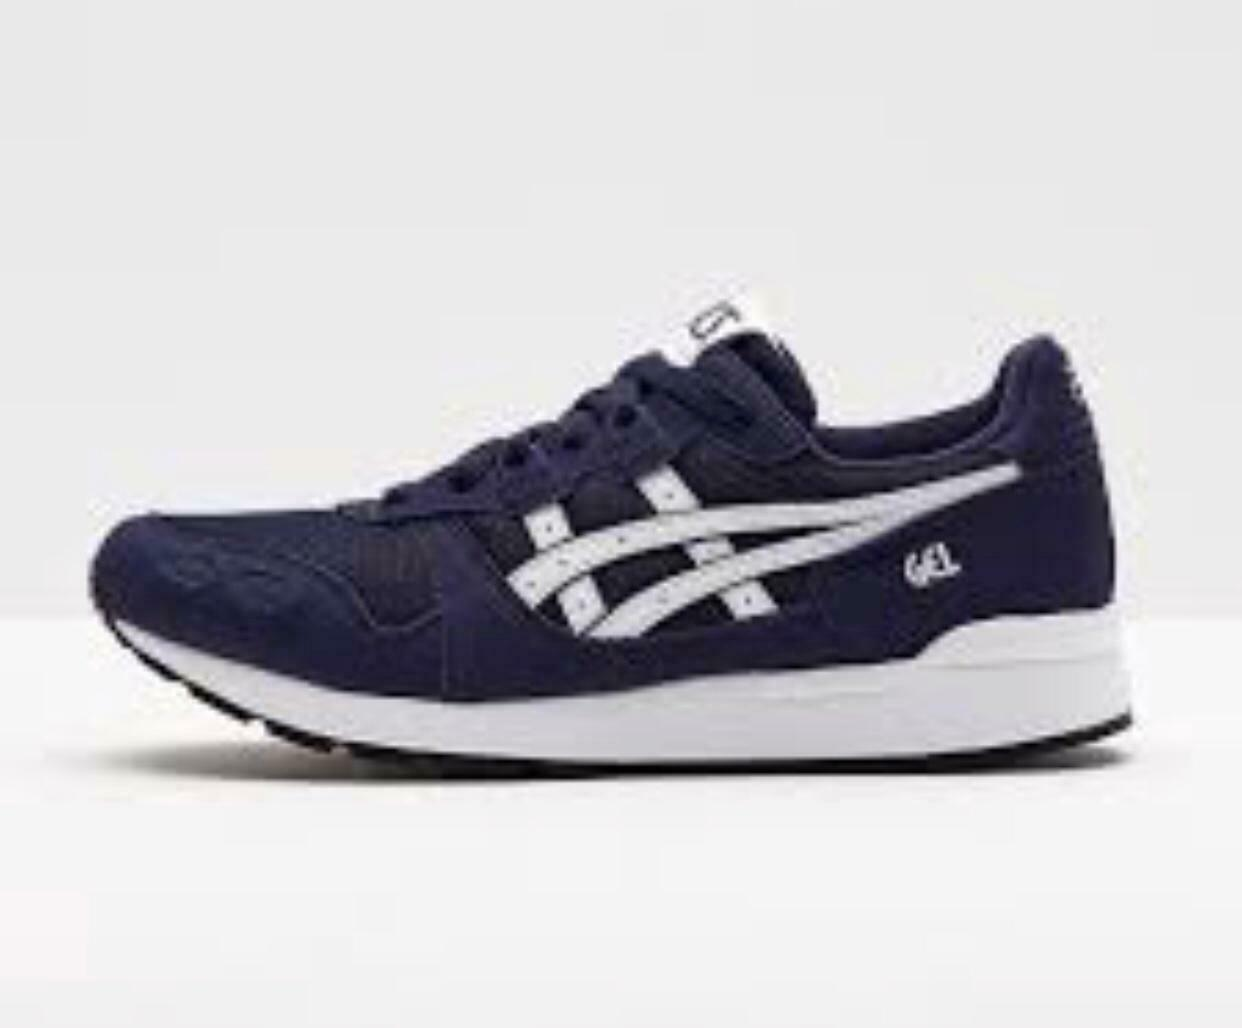 huge discount 1fb59 4ba43 Mens Size 8 US ASICS TIGER GEL-LYTE 1193A026-400 NEW IN BOX Peacoat